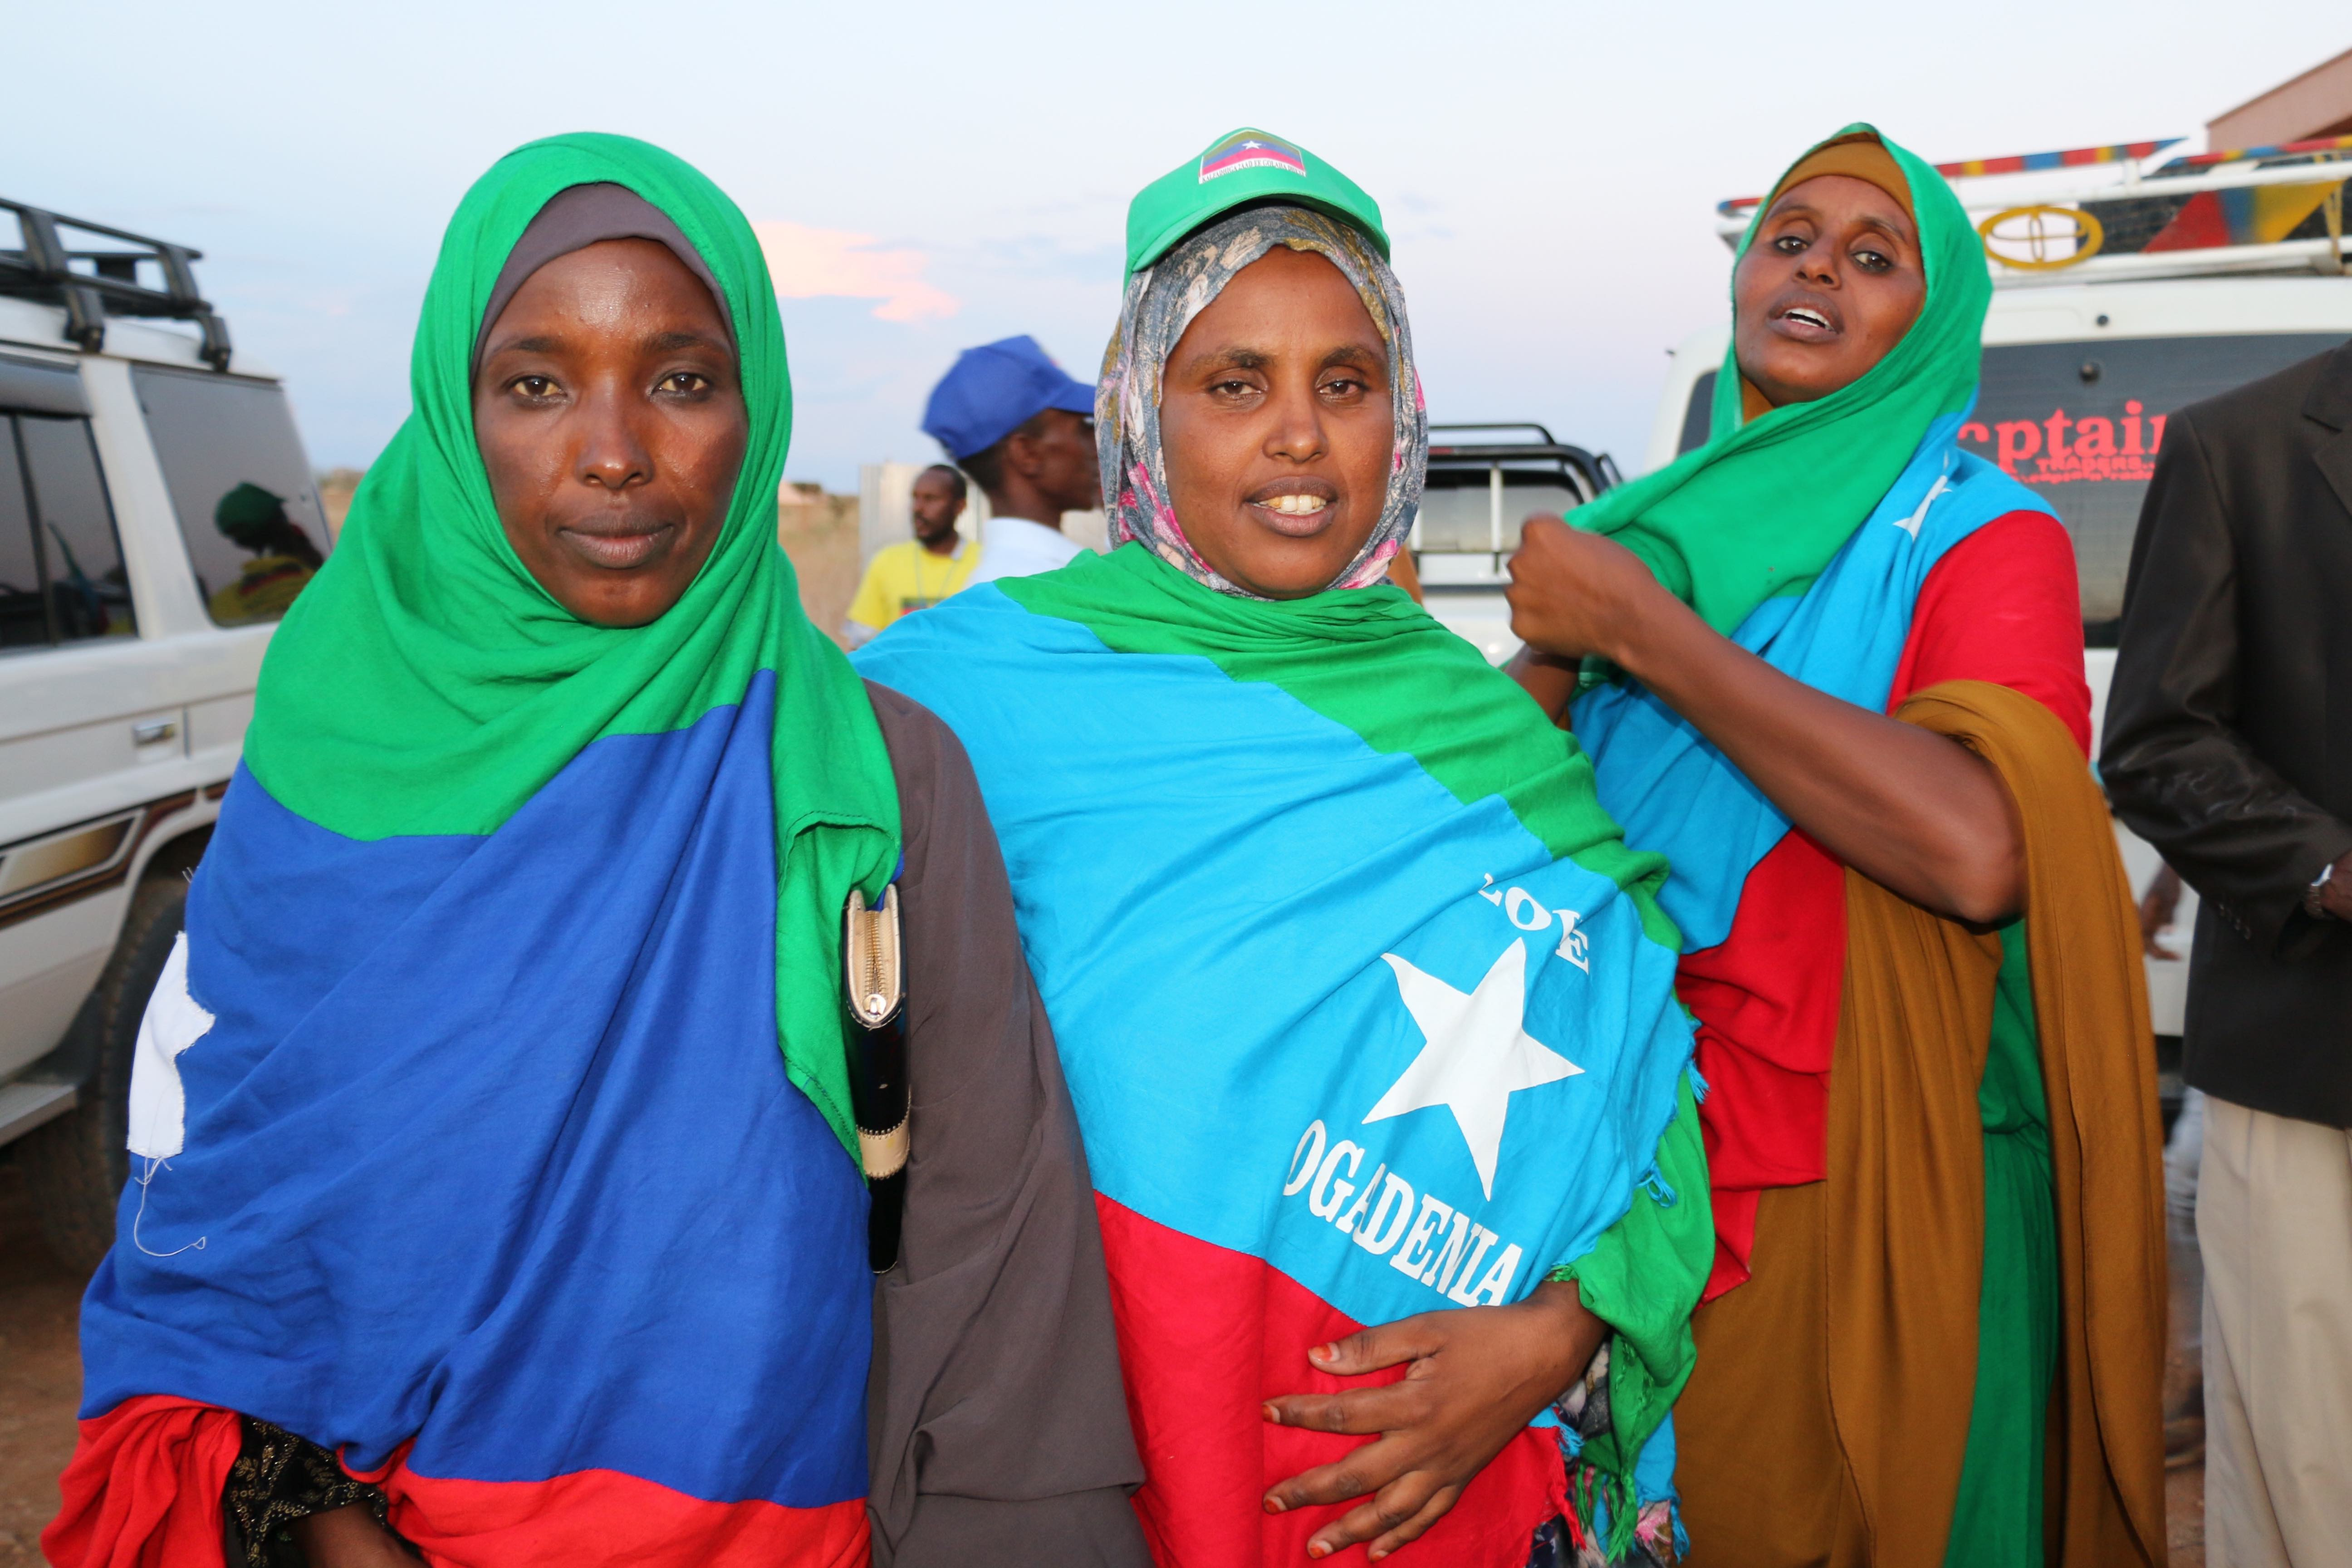 Participants bearing the Ogaden flag at a conference organised by the Ogaden National Liberation Front (ONLF) to discuss its peace deal with the Ethiopian government and transition from an armed group to a political party, April 2019. © Conciliation Resources